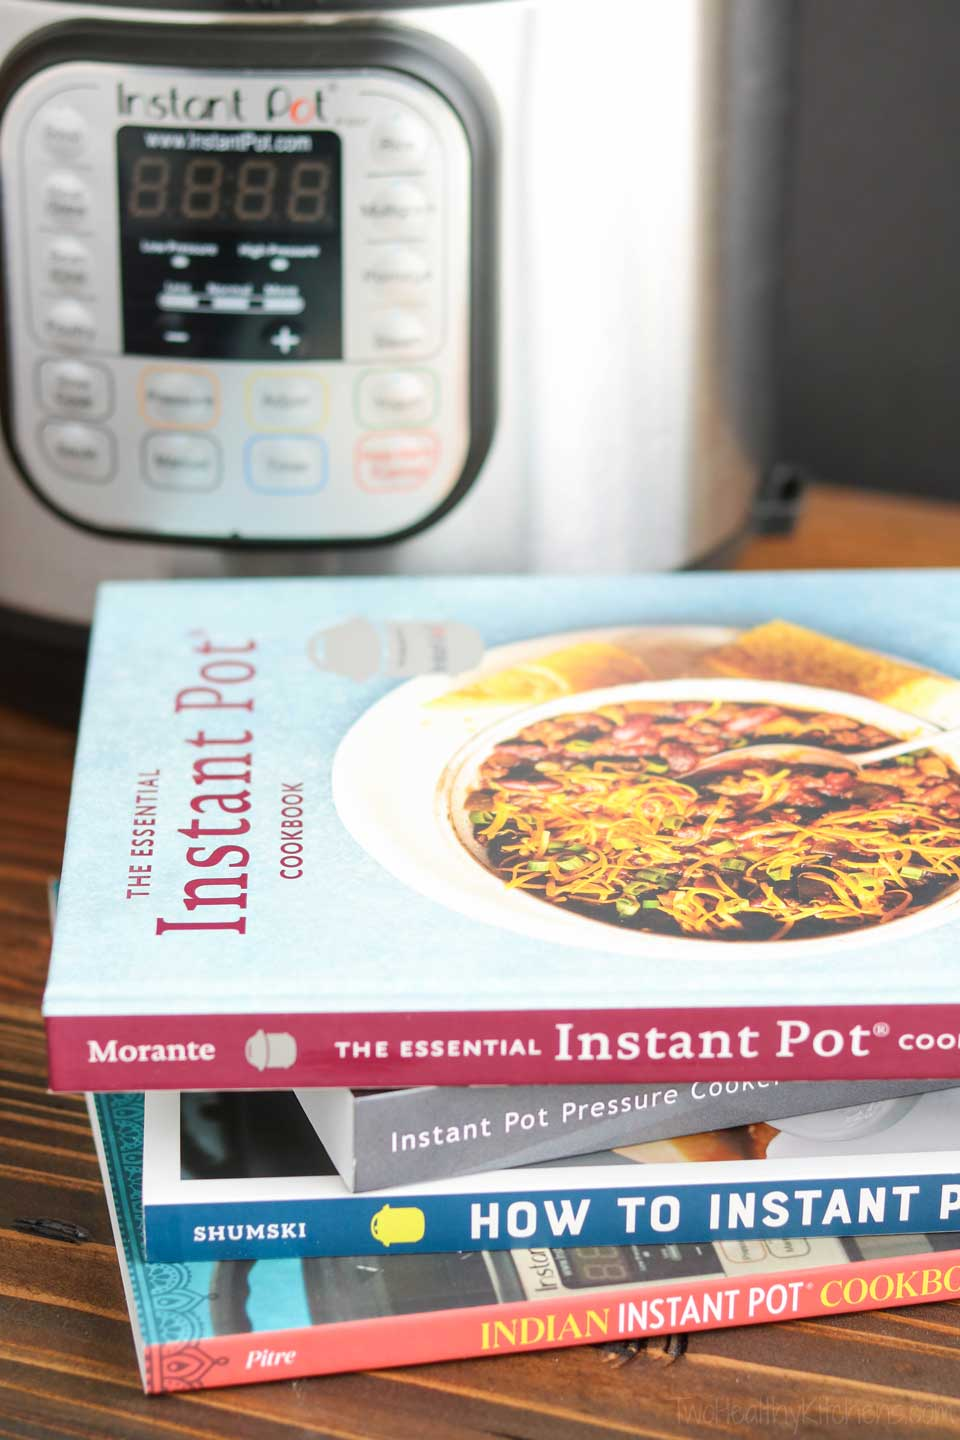 "Even after I bought my first Instant Pot, I still wasn't really sure ""Hey – what can I cook in my Instant Pot?"" The more I researched and looked through cookbooks, the more surprised I was about just how many things you can cook in an Instant Pot! It's important to know what works well, and what doesn't though!"